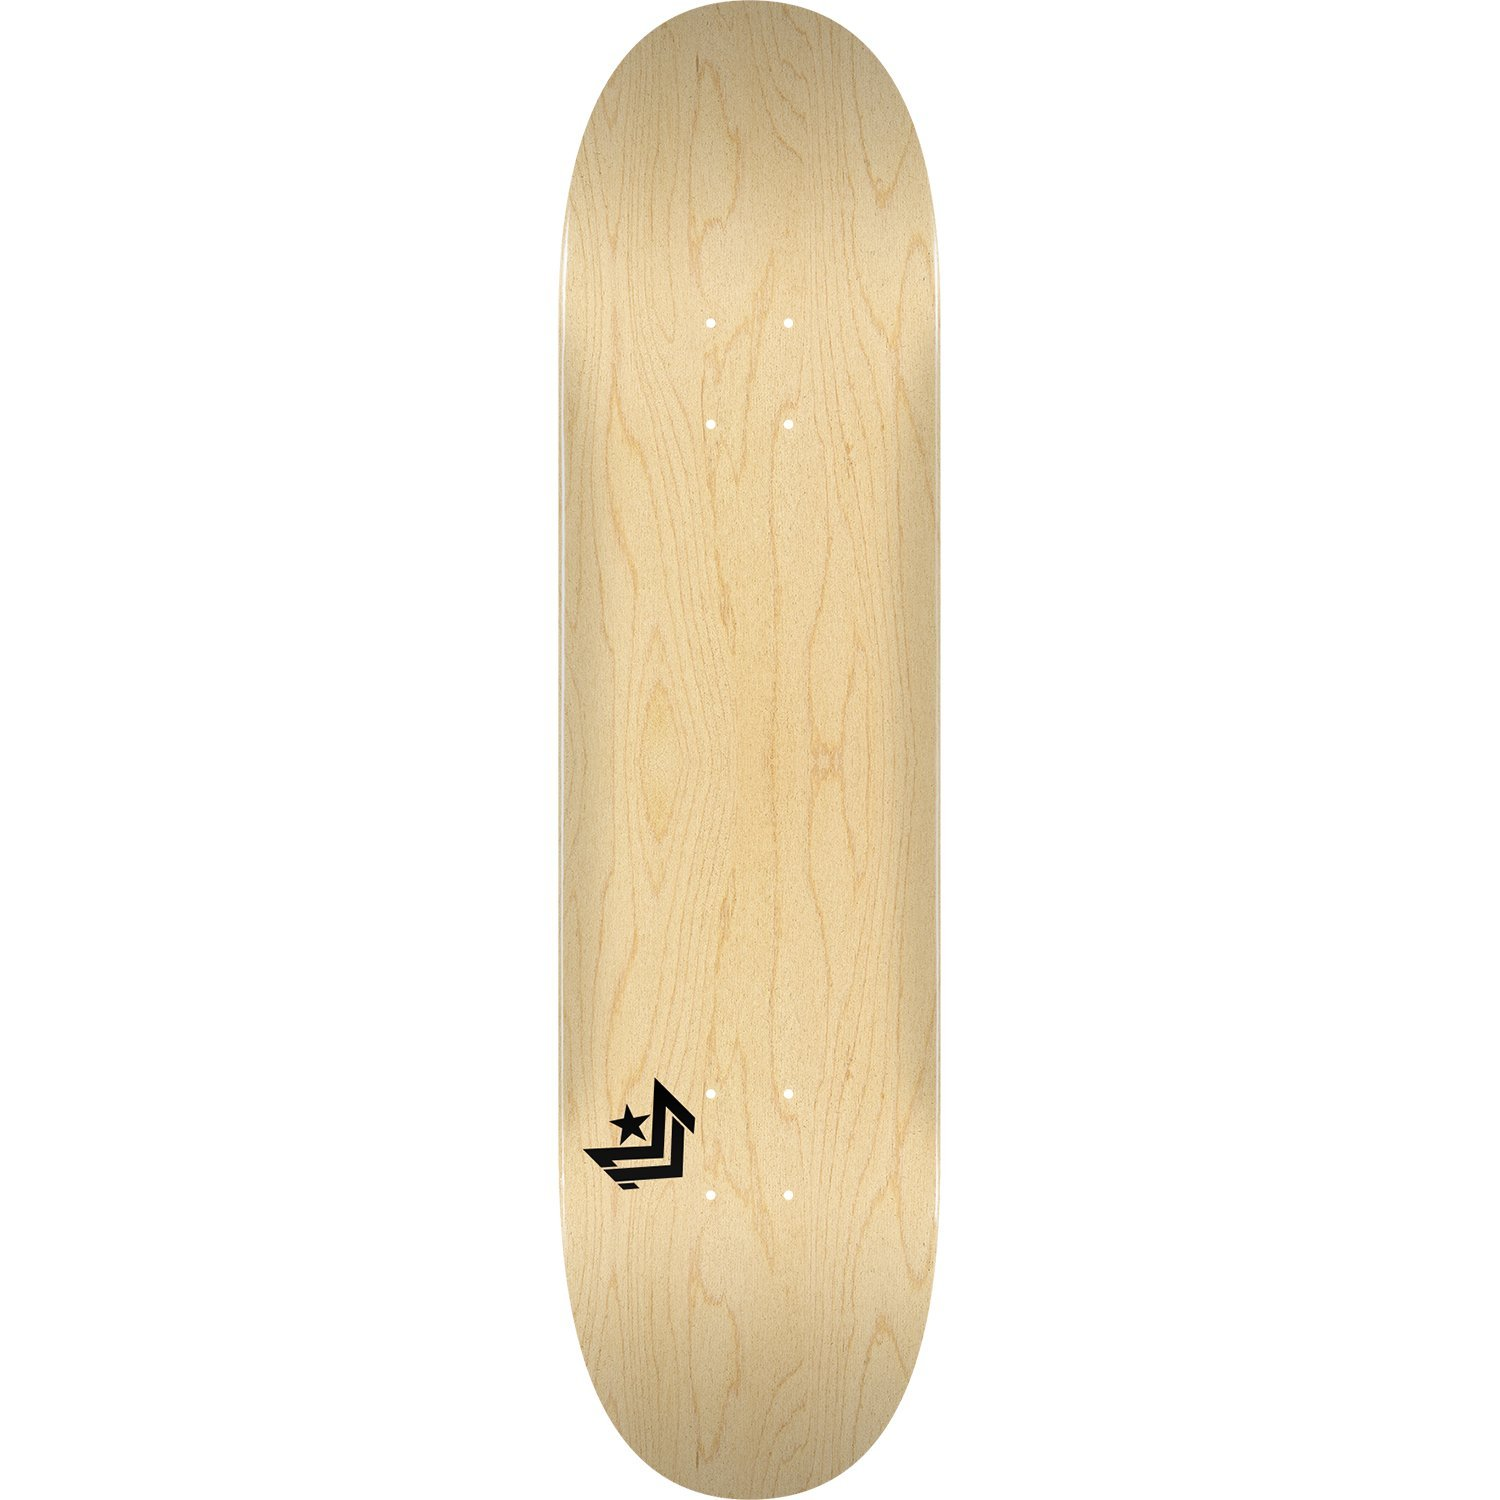 mini-logoデッキ248 /K - 20 – 8.25 Chevron Natural – Assembled as complete skateboard   B07CPKM9FY, ギフトショップナコレ 3a9d545b